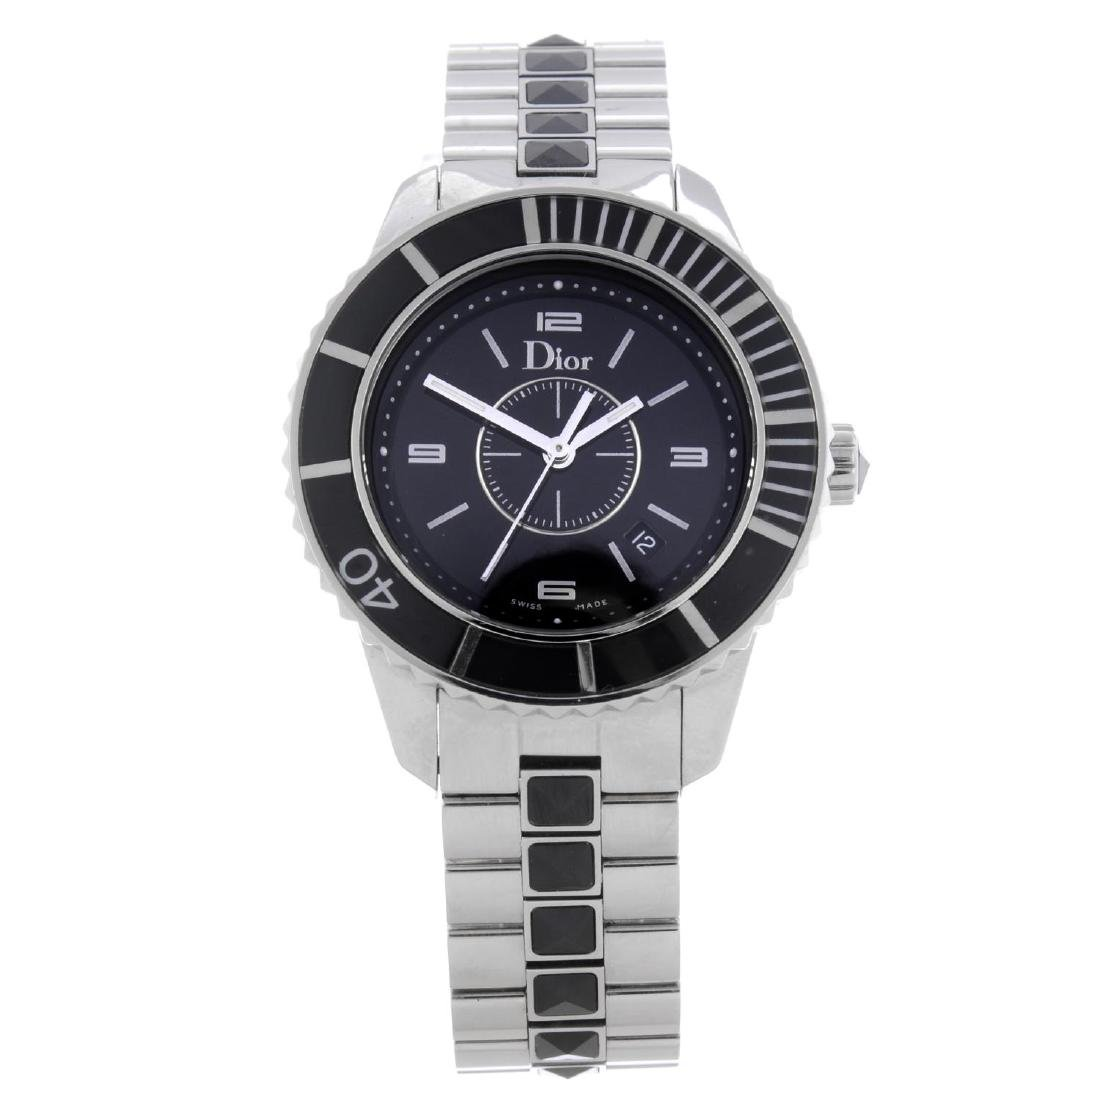 DIOR - a lady's Christal bracelet watch. Stainless